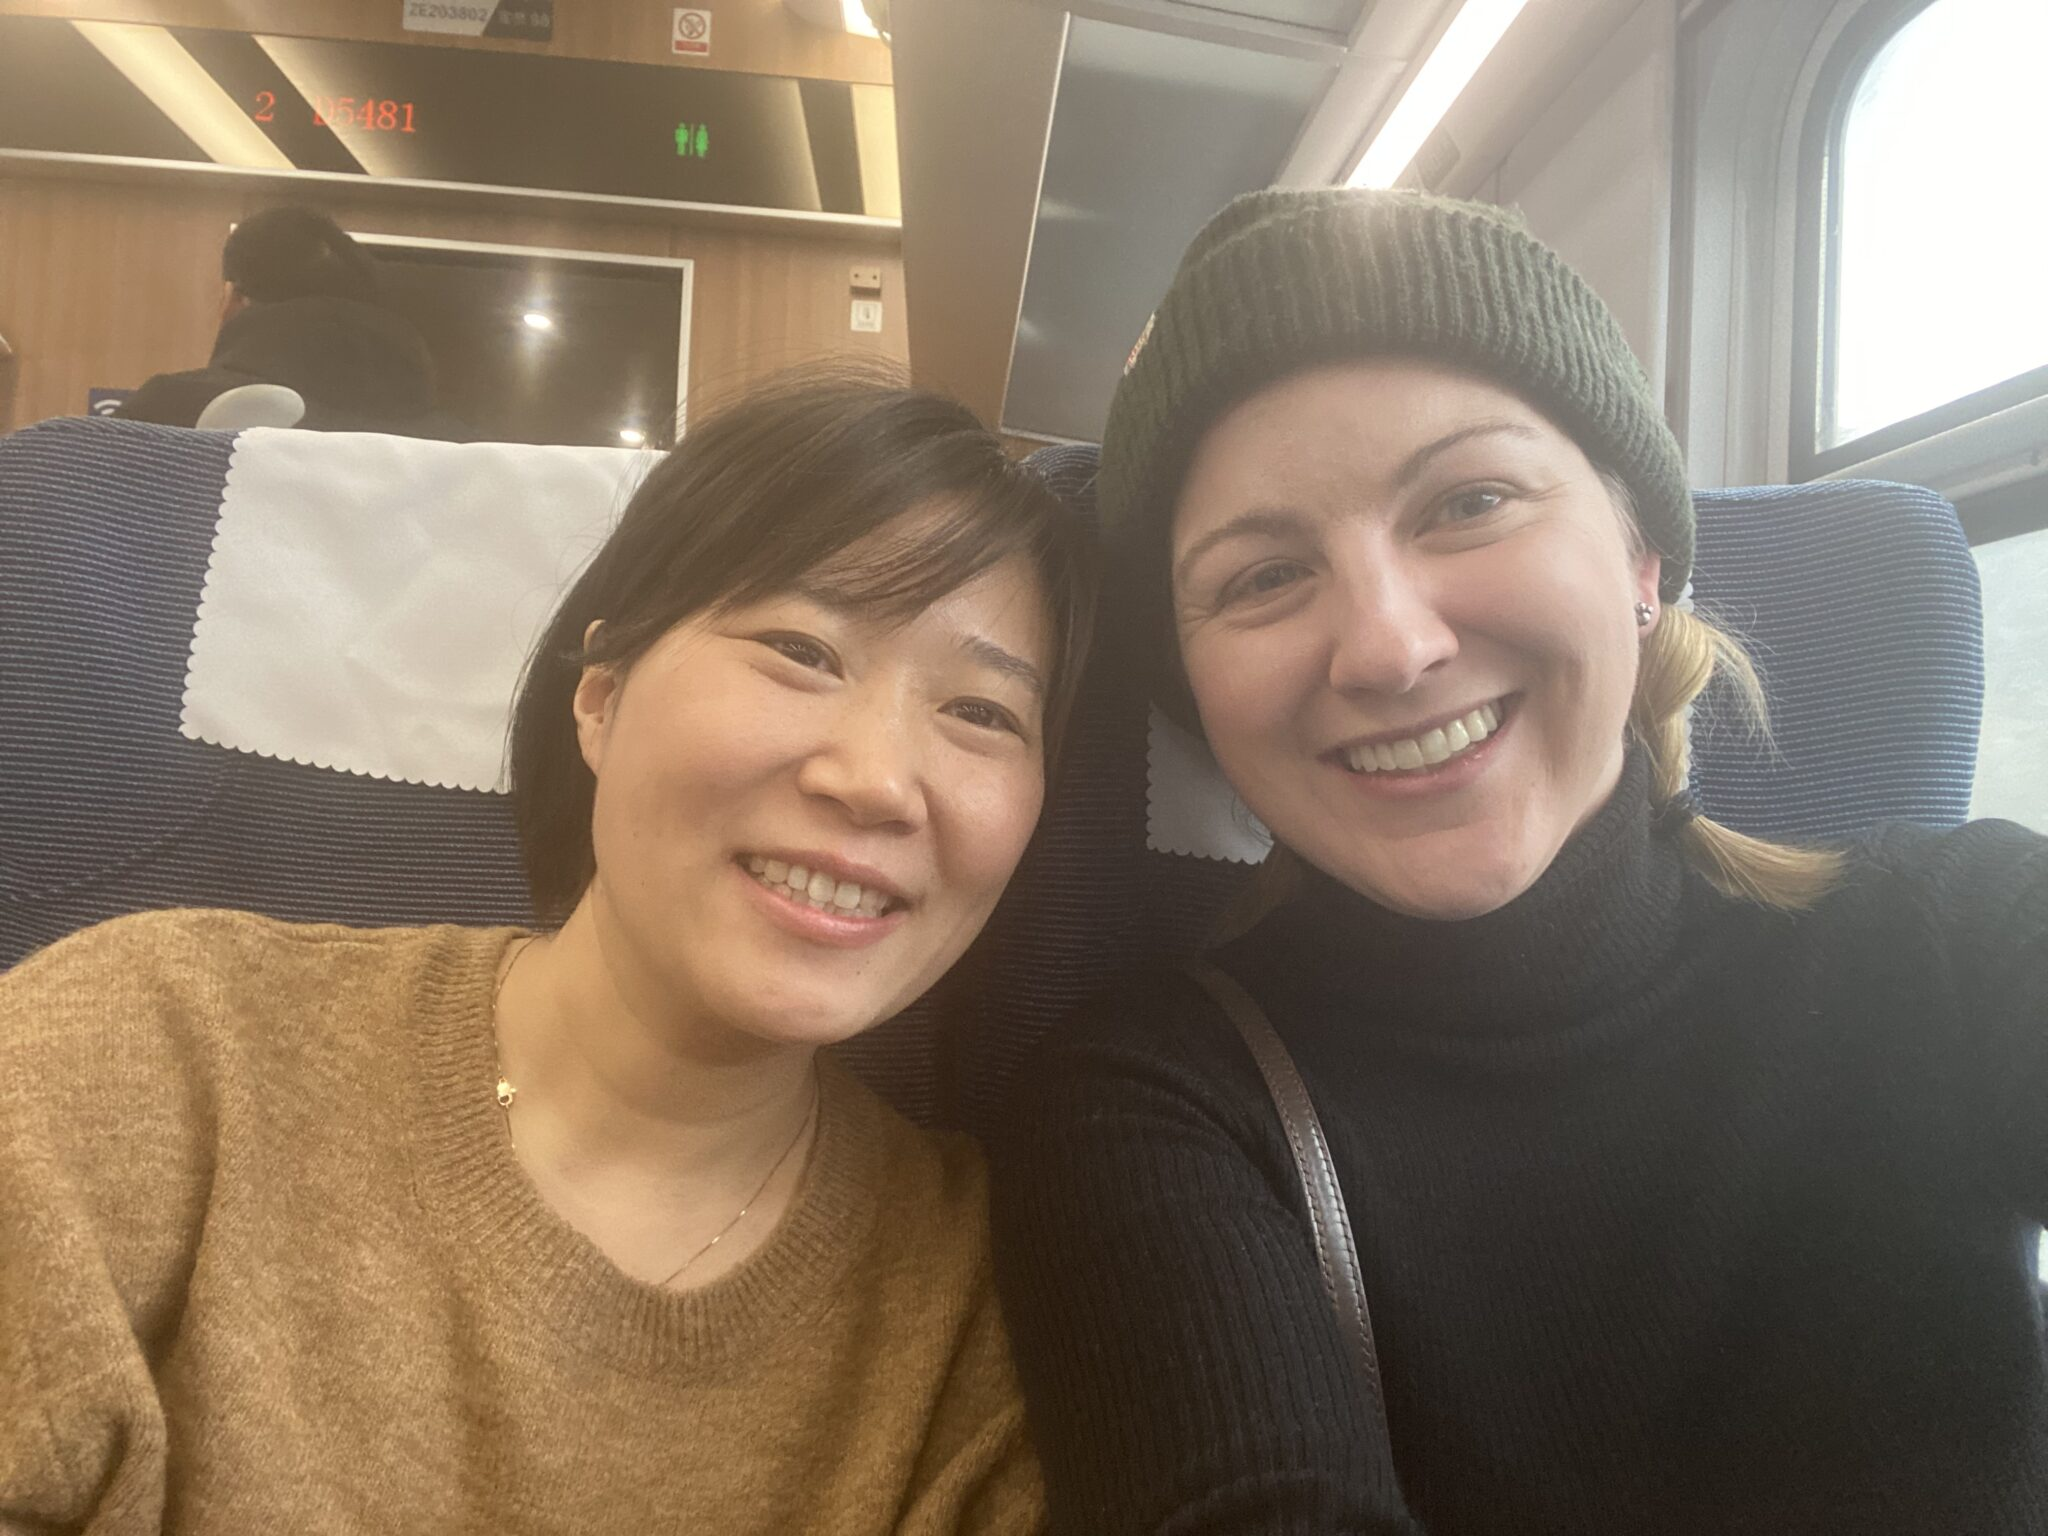 Two women smiling on train